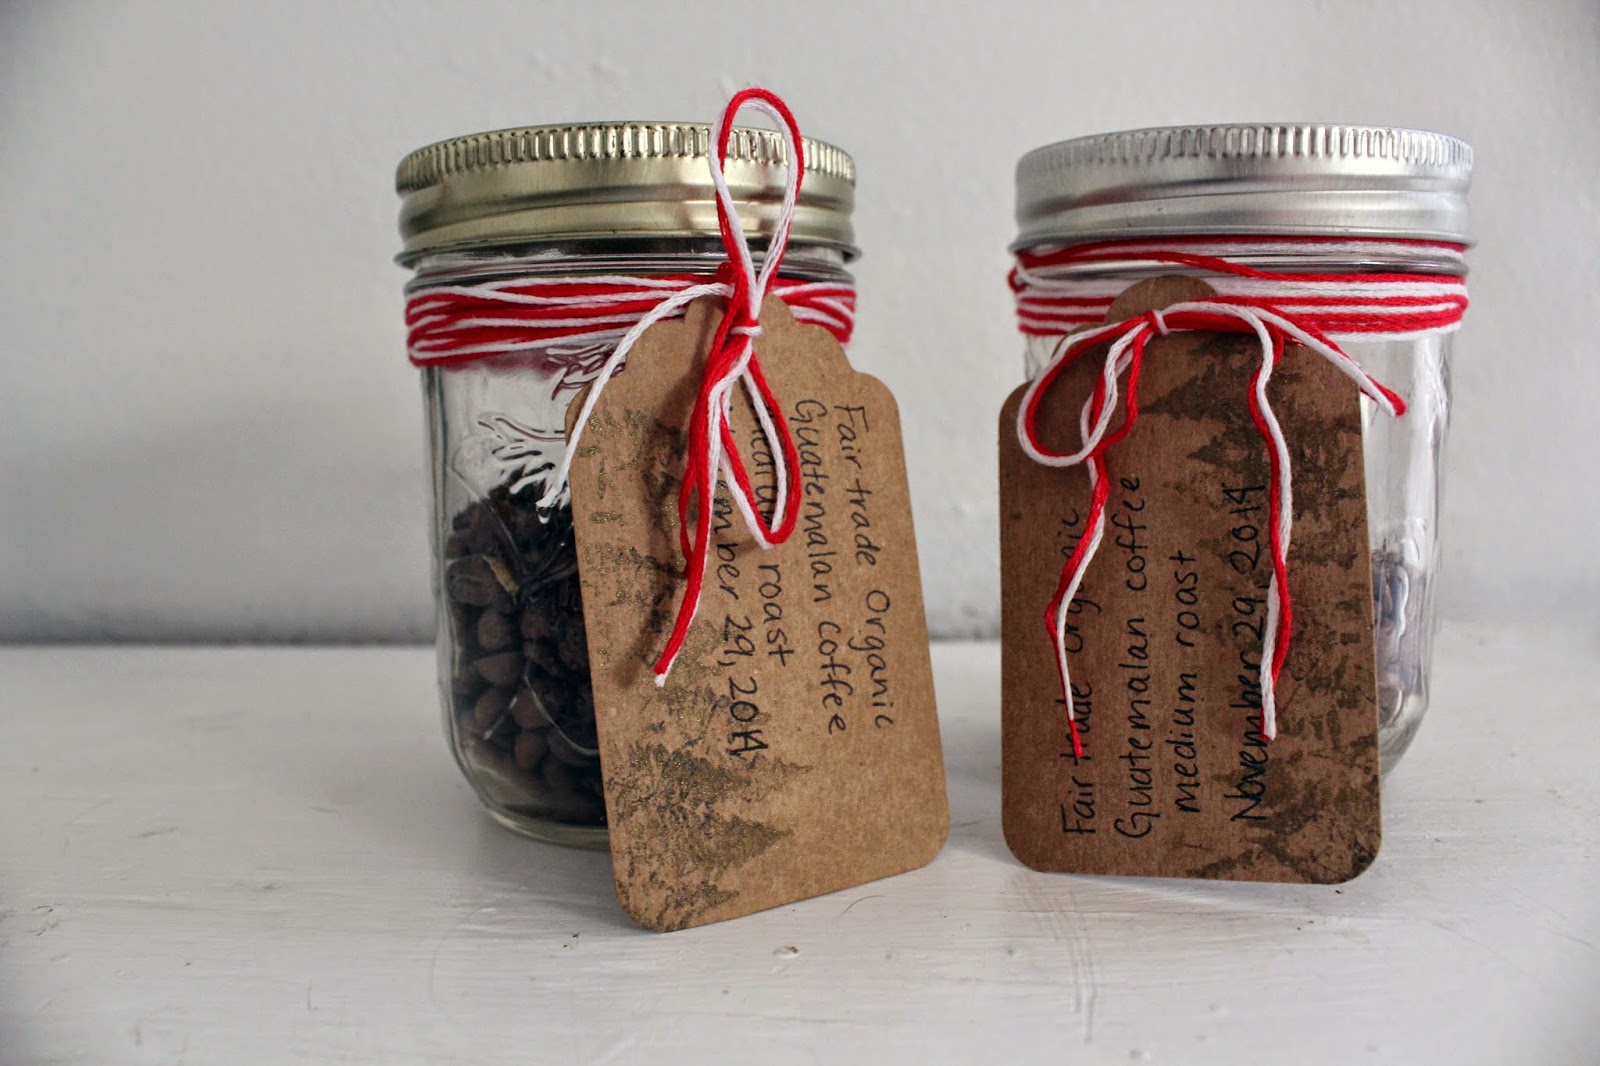 Kait, awake: DIY: Roast your own coffee for Christmas gifts